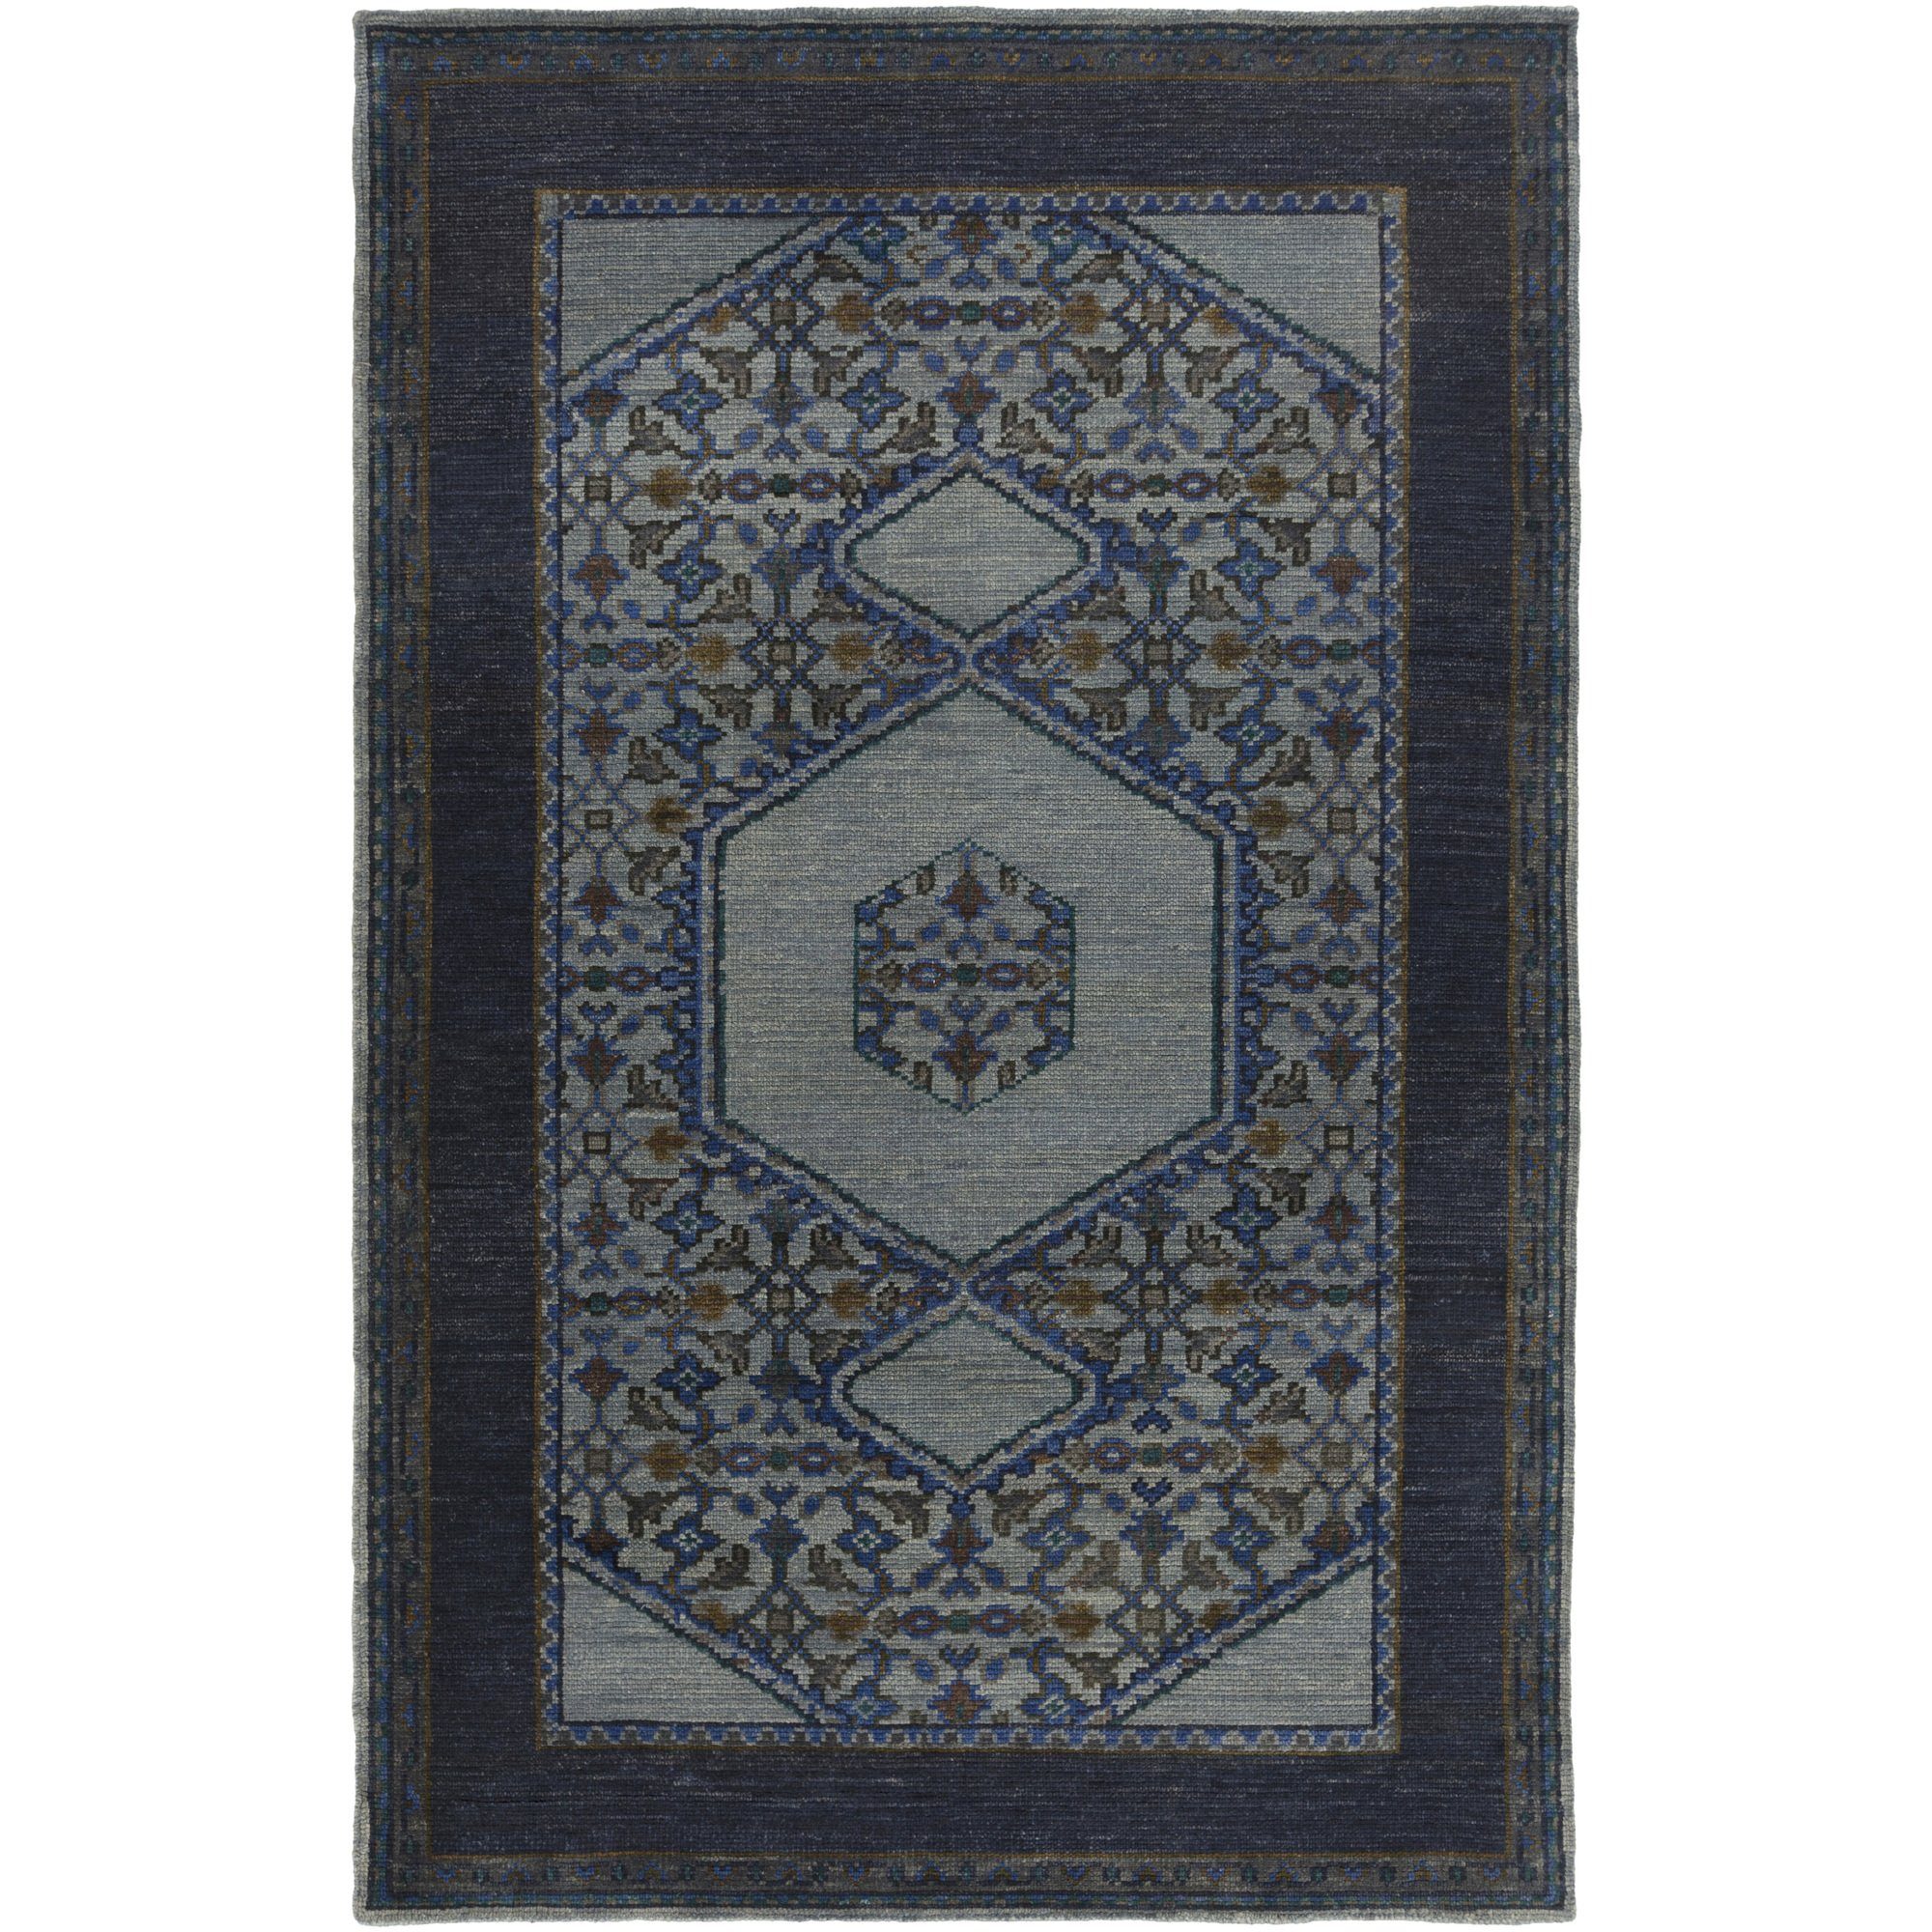 Surya HVN1218-23 Hand Knotted Casual Accent Rug, 2 by 3-Feet, Slate/Navy/Gray/Teal/Olive/Mocha/Forest